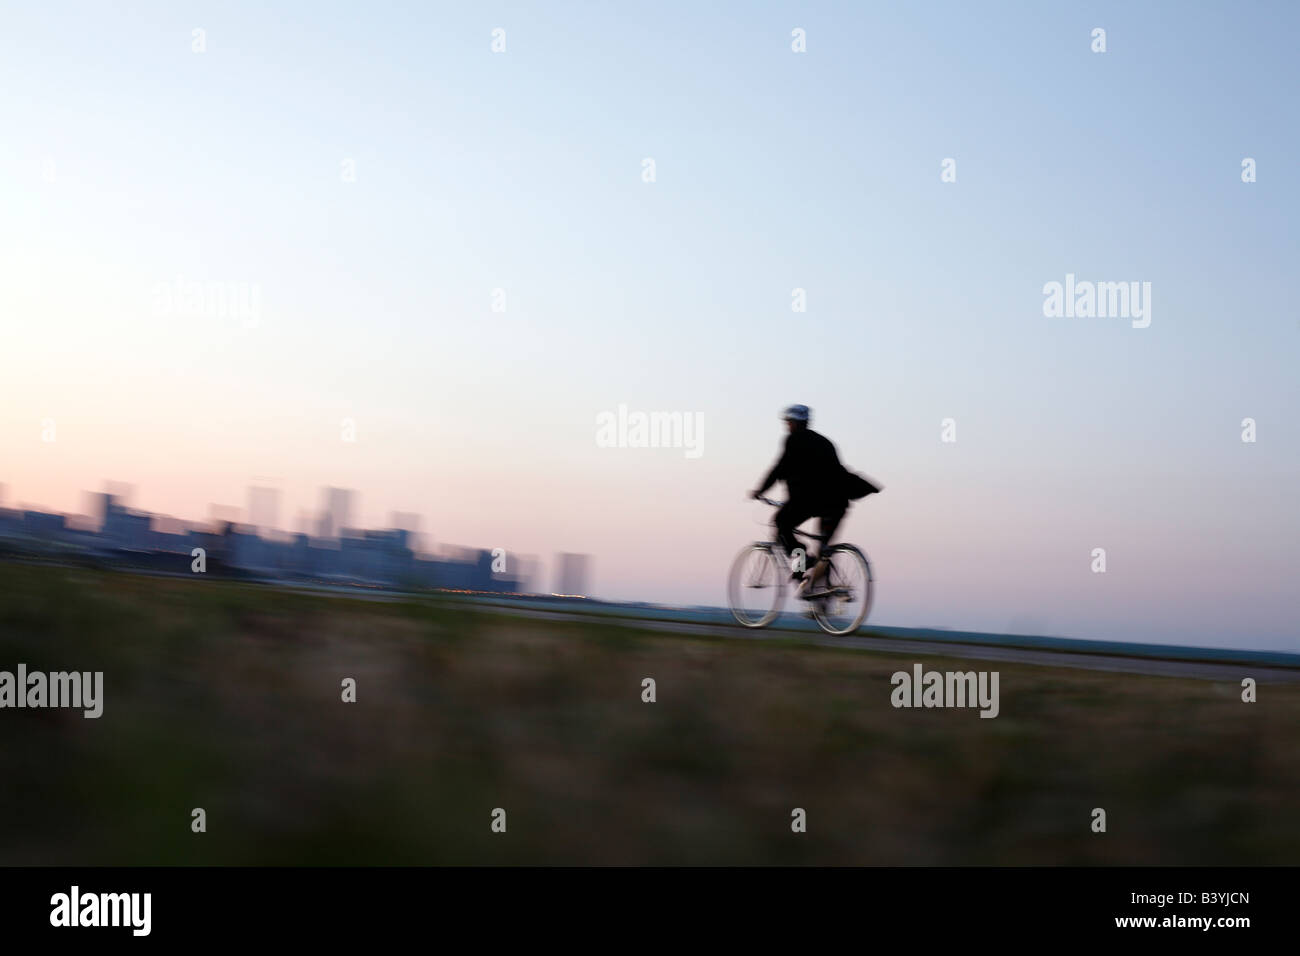 Man in suit rides bicycle along Chicago lakefront - Stock Image